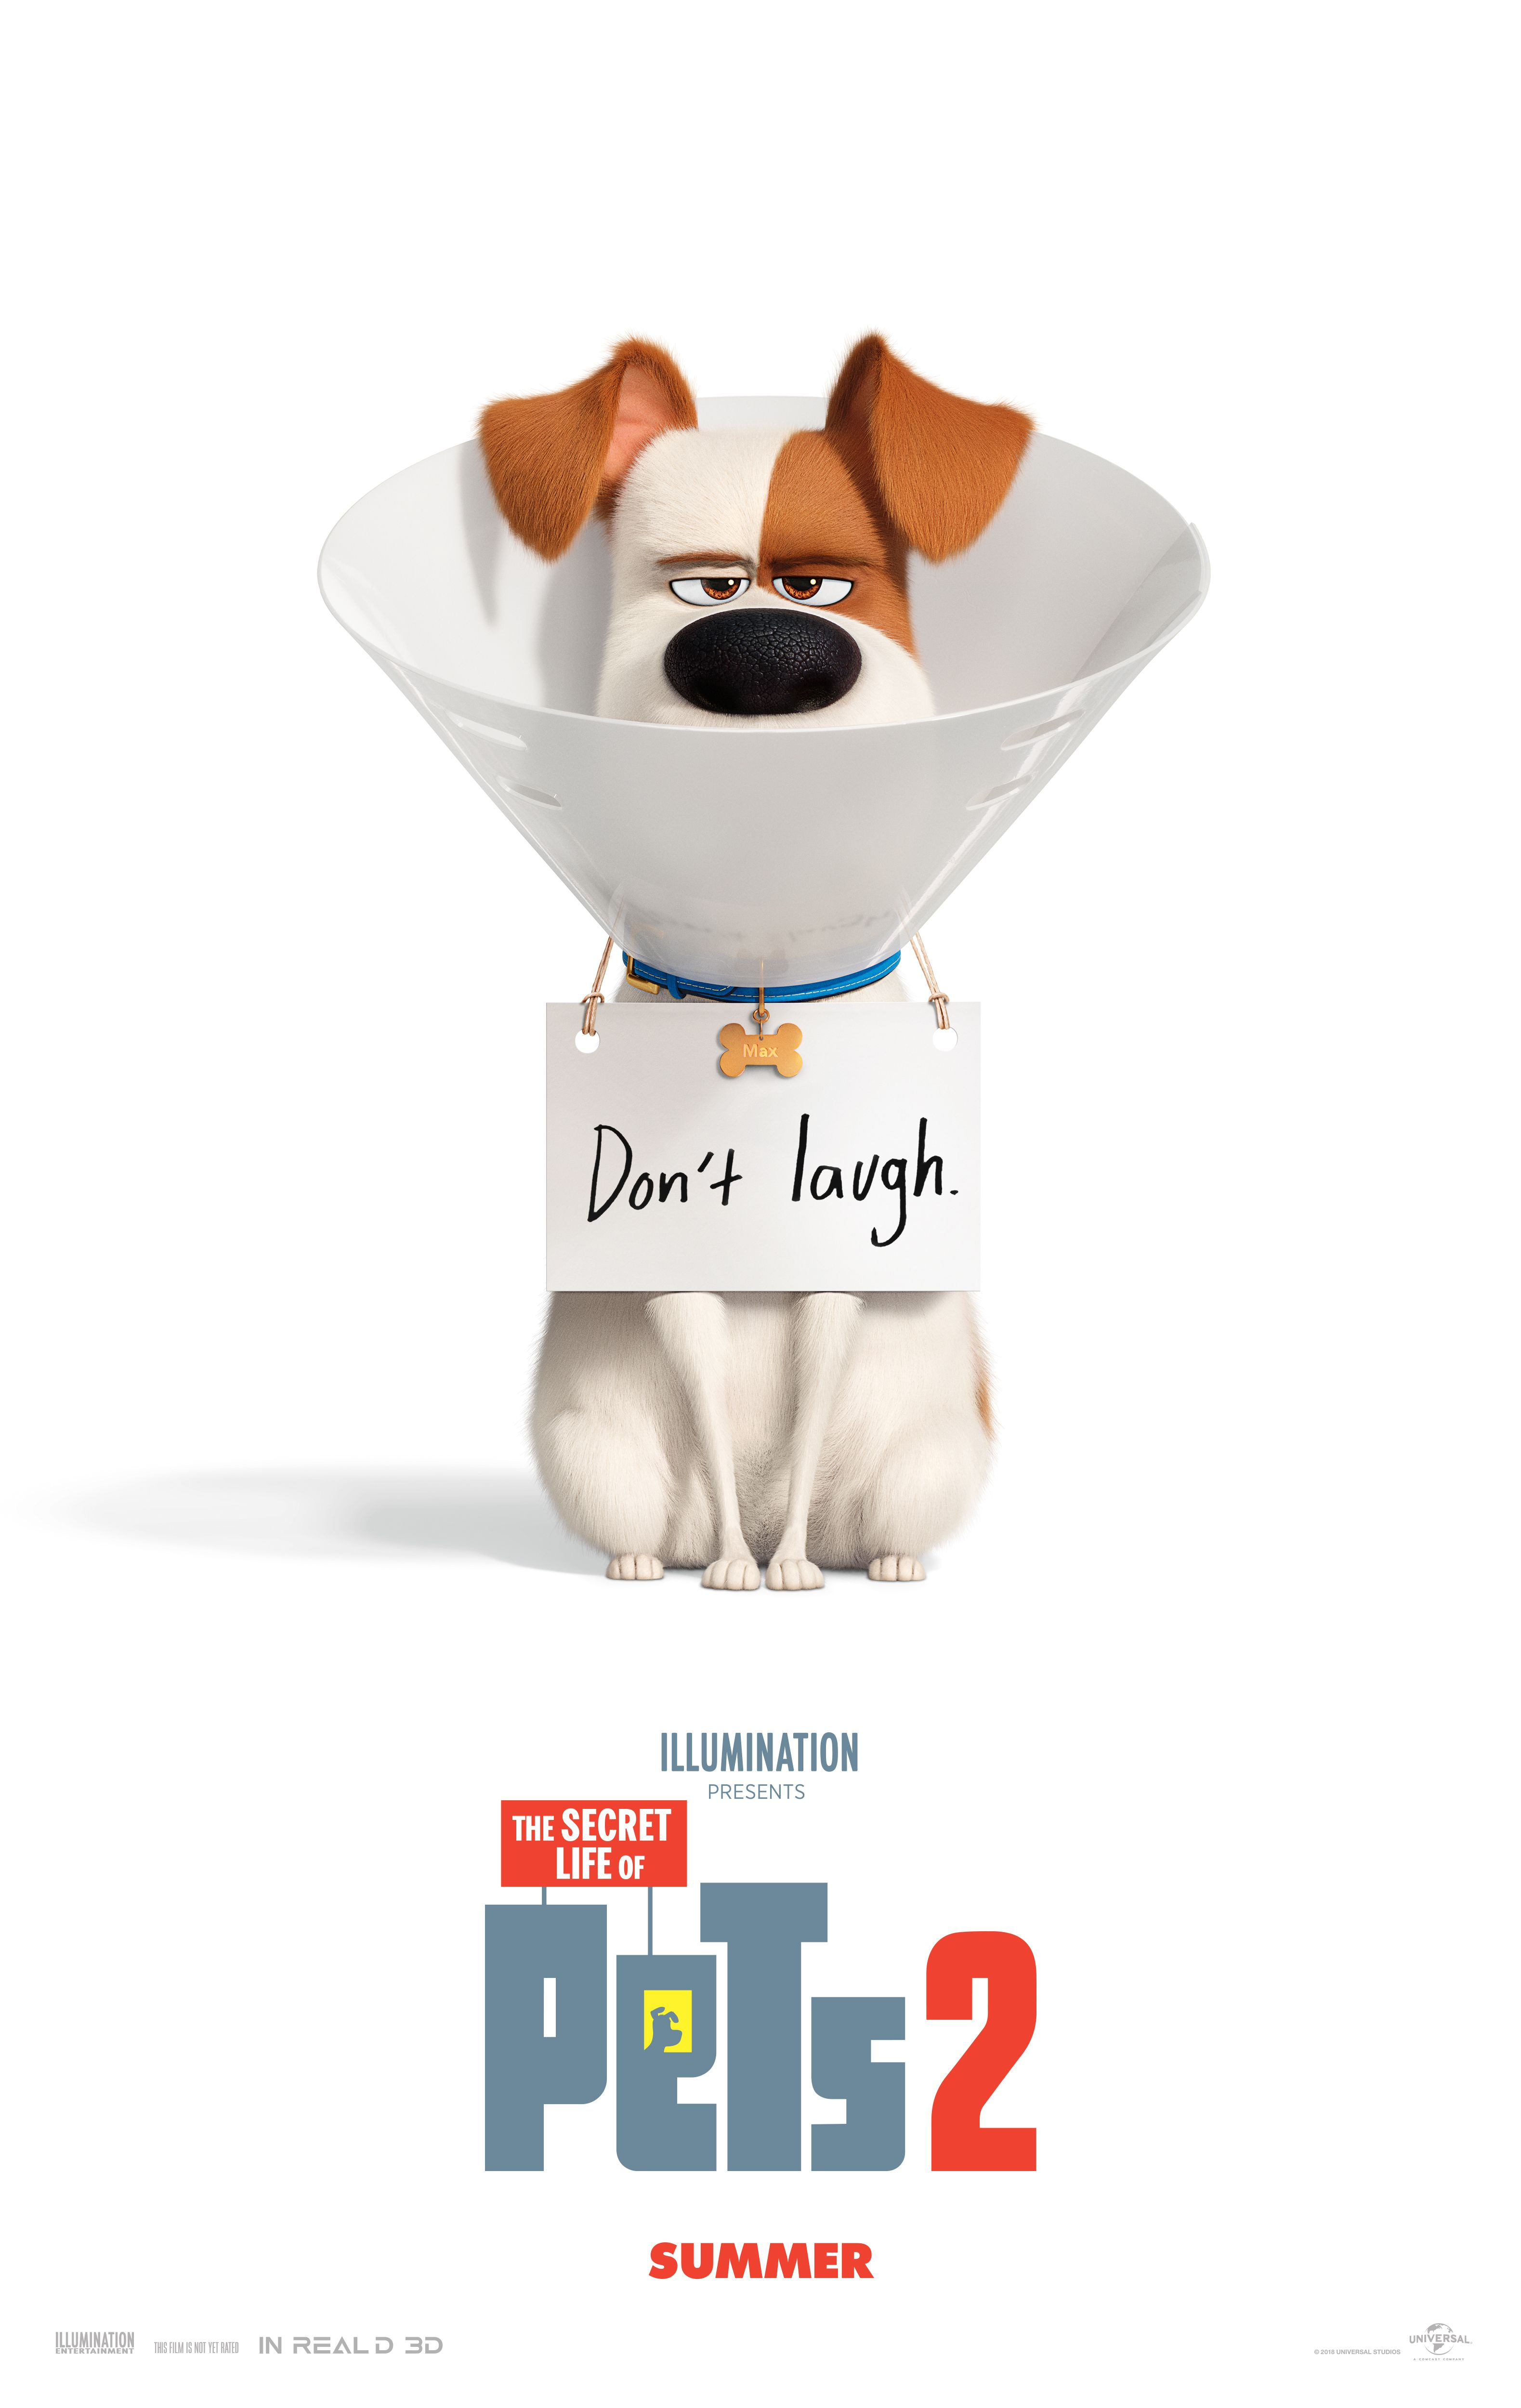 The Secret Life Of Pets 2 In Theaters June 7 2019 Secret Life Of Pets Secret Life Full Movies Download